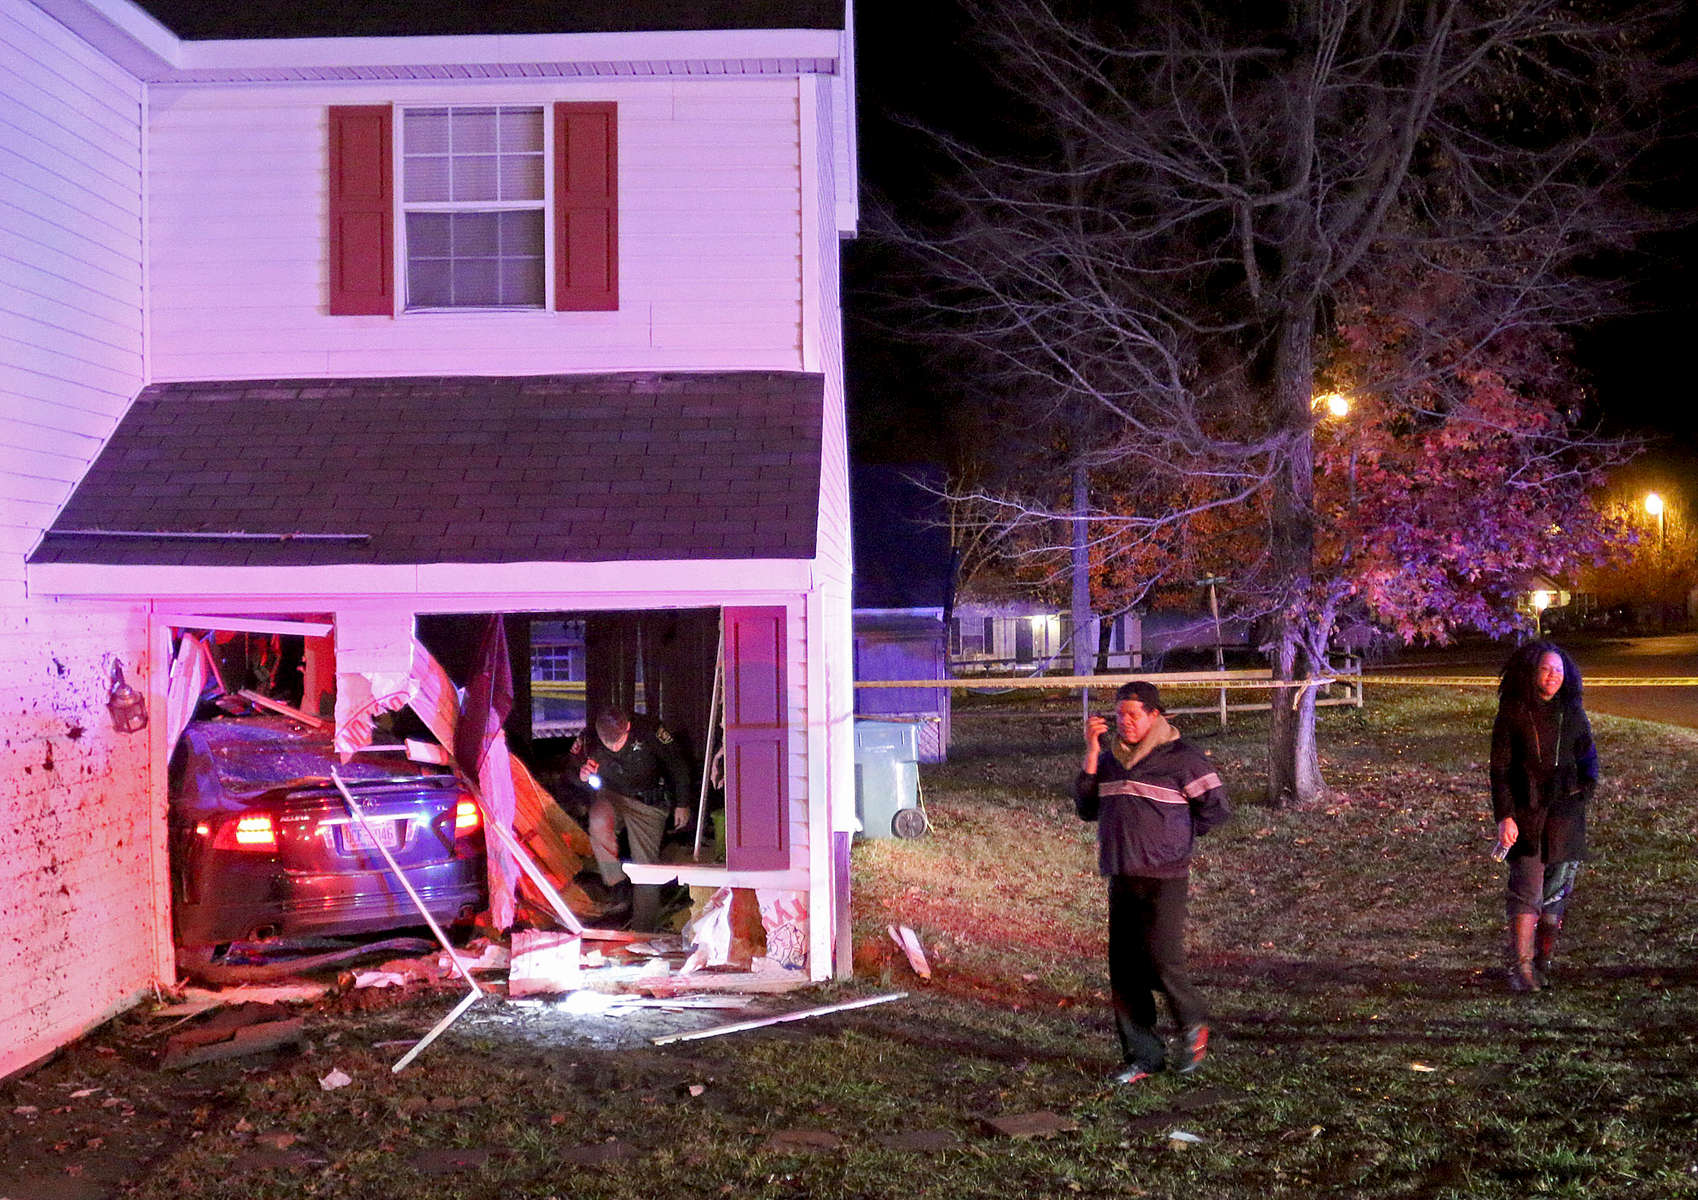 Third Place | Spot News Julian Harrison, FreelanceCarlos and Maria Rosas were asleep in their second floor bedroom when a car being chased by deputies ran off the road and crashed into their home. The driver jumped and ran leaving his girlfriend and a small baby behind.